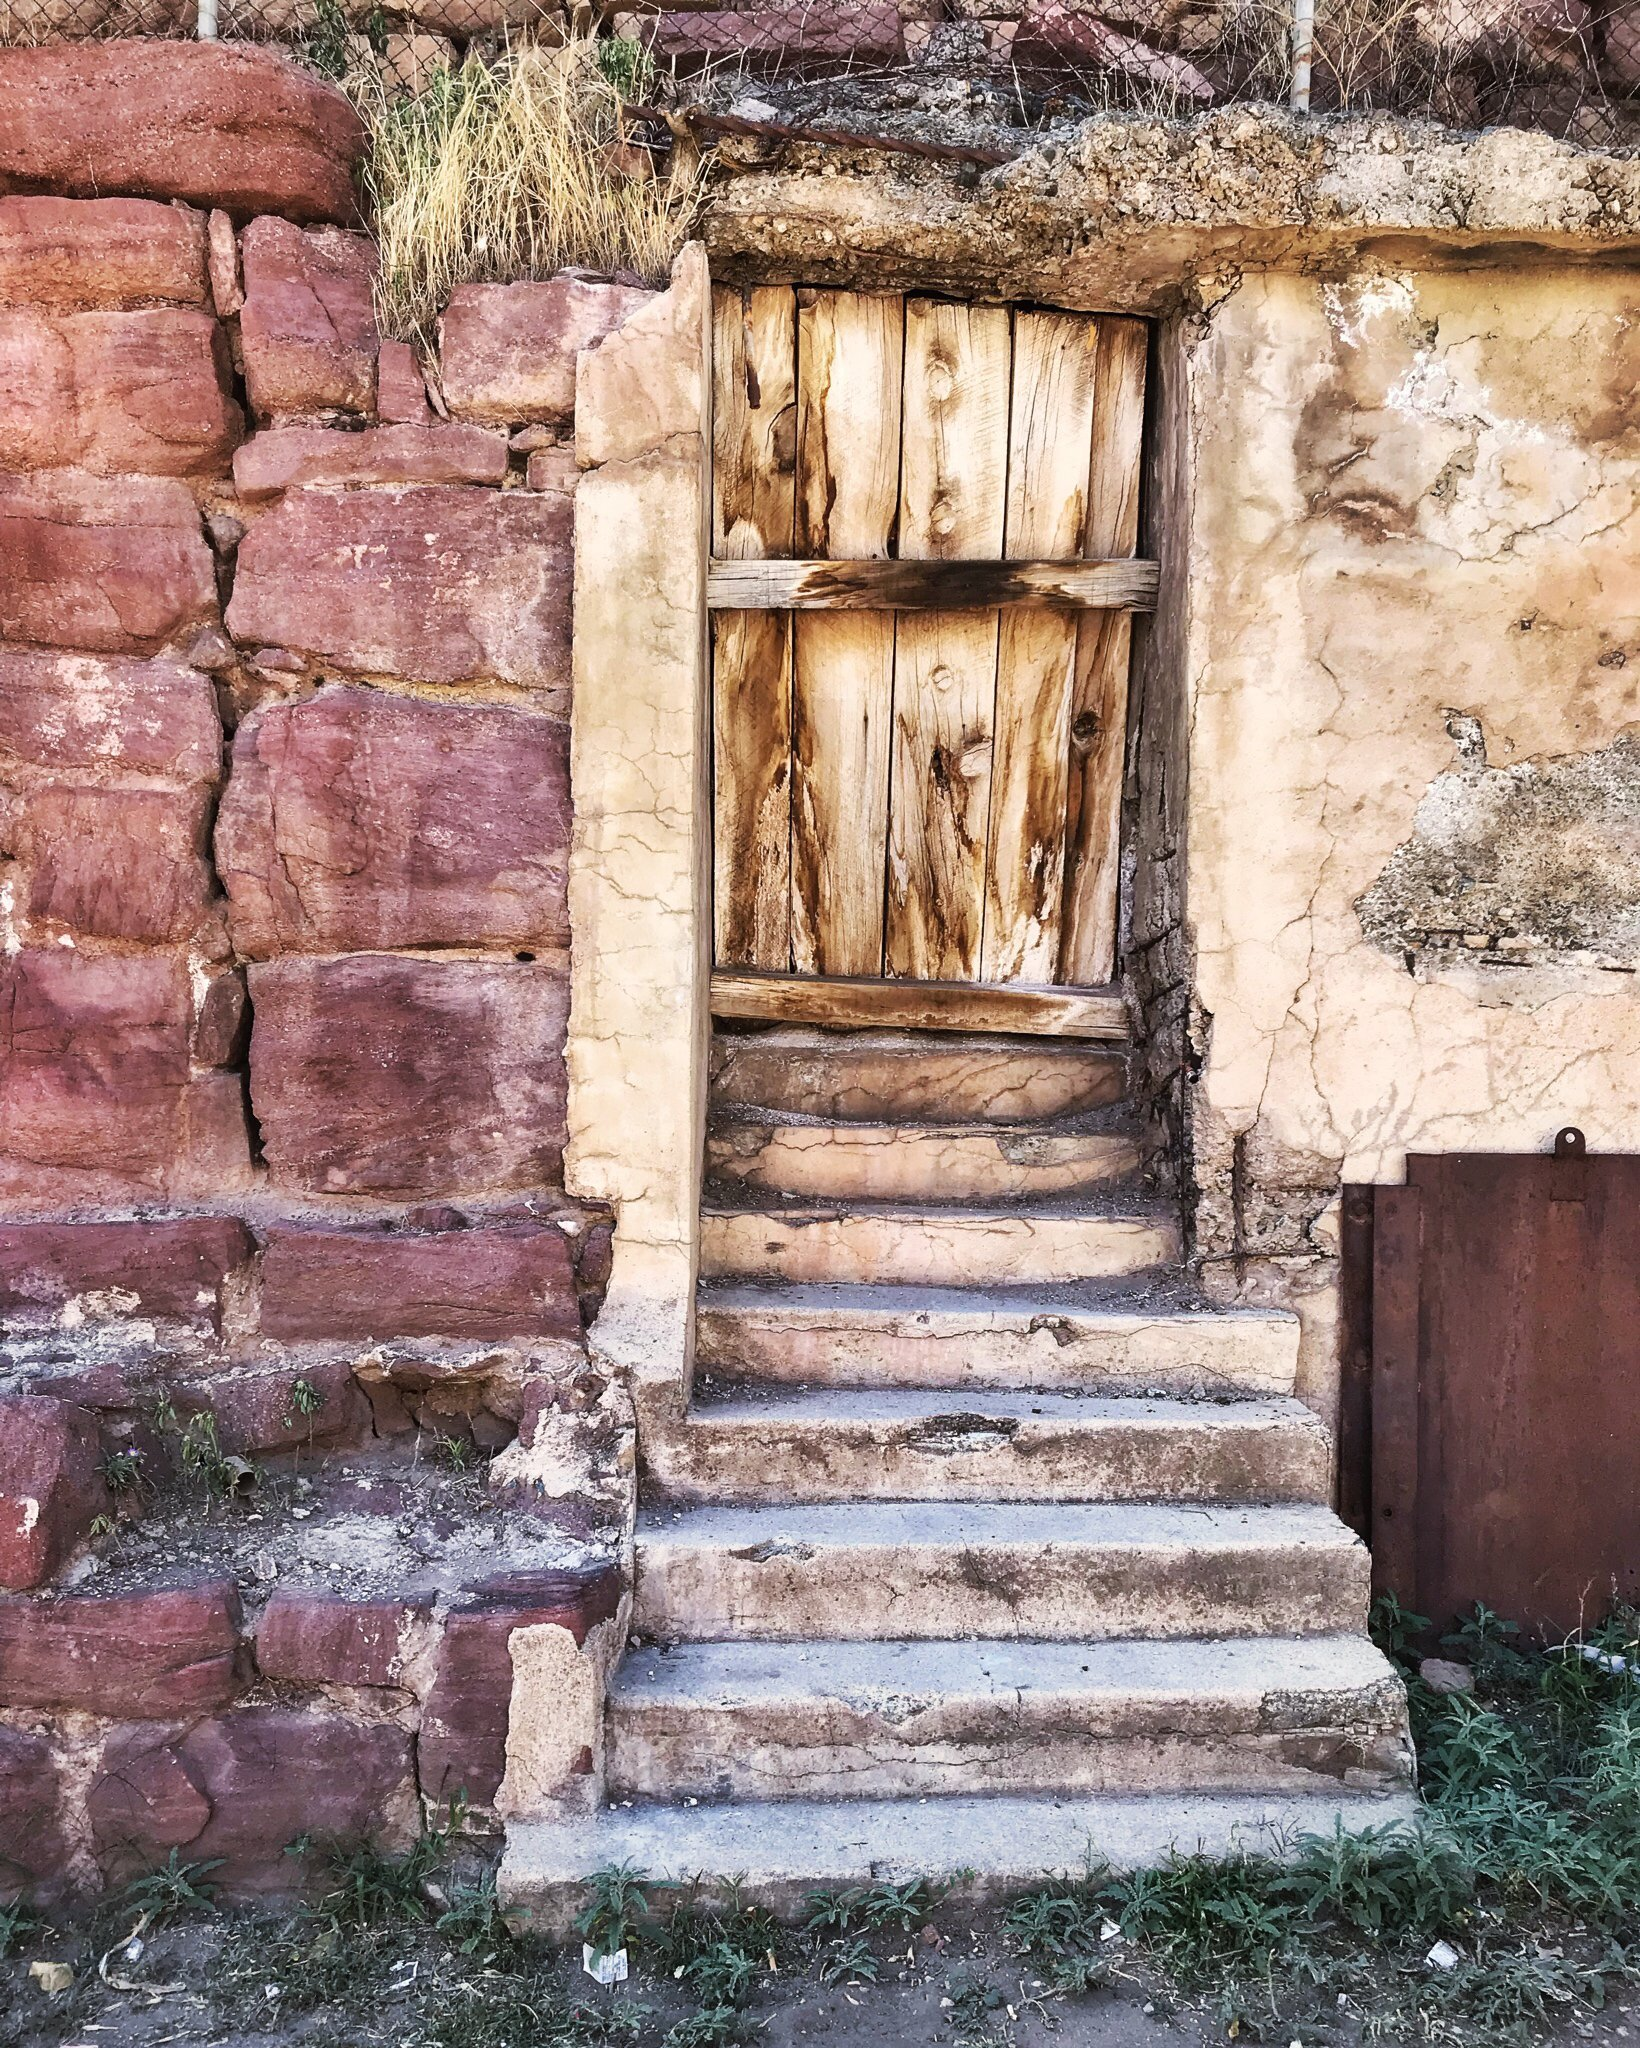 door, rock, gate to hell, Jerome, short story, flash fiction, texture